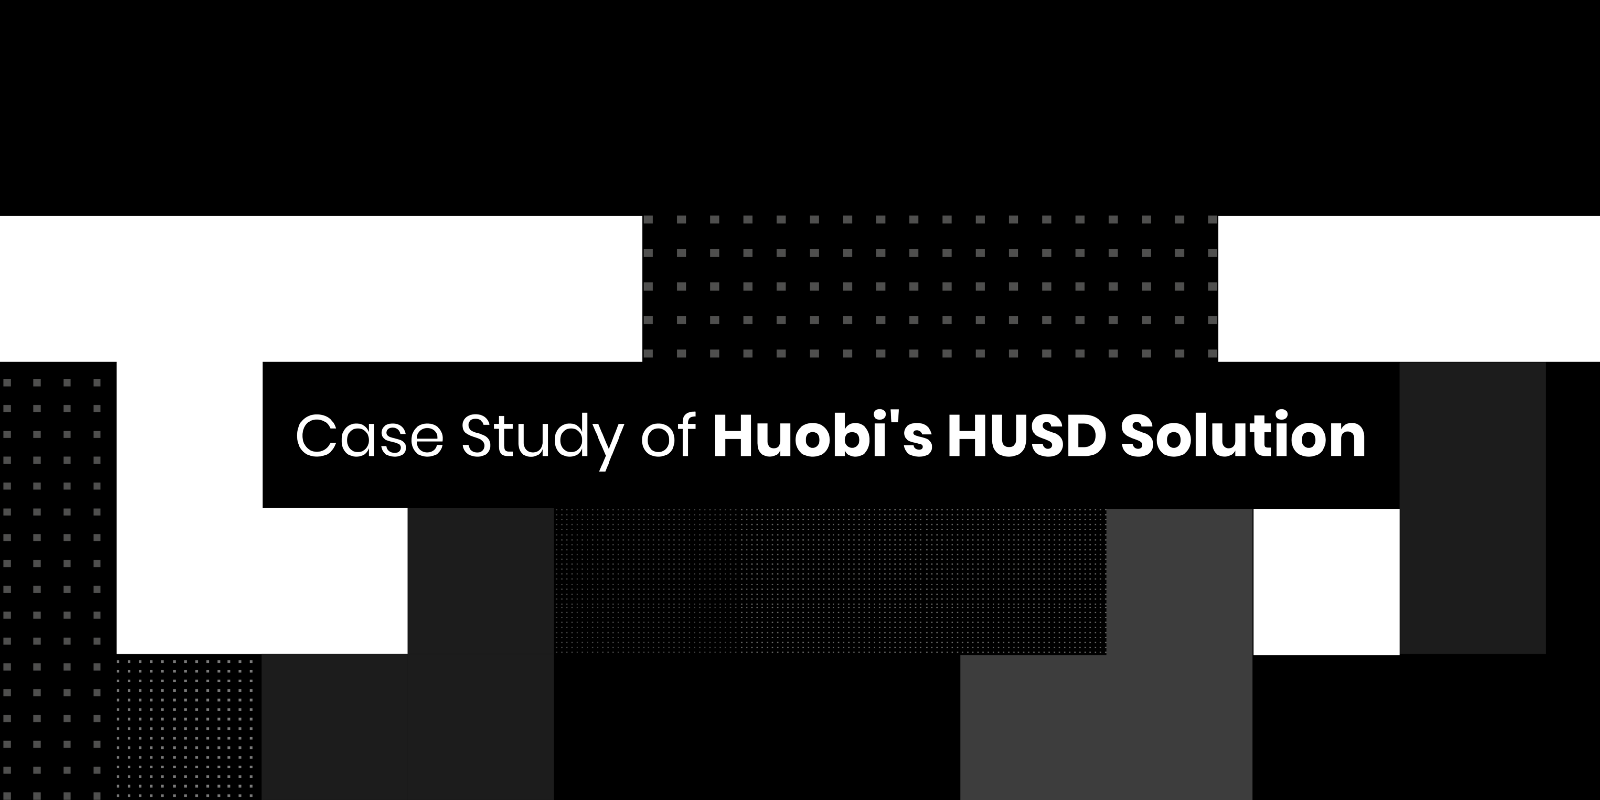 /a-case-study-on-husd-752b16a2d1f8 feature image